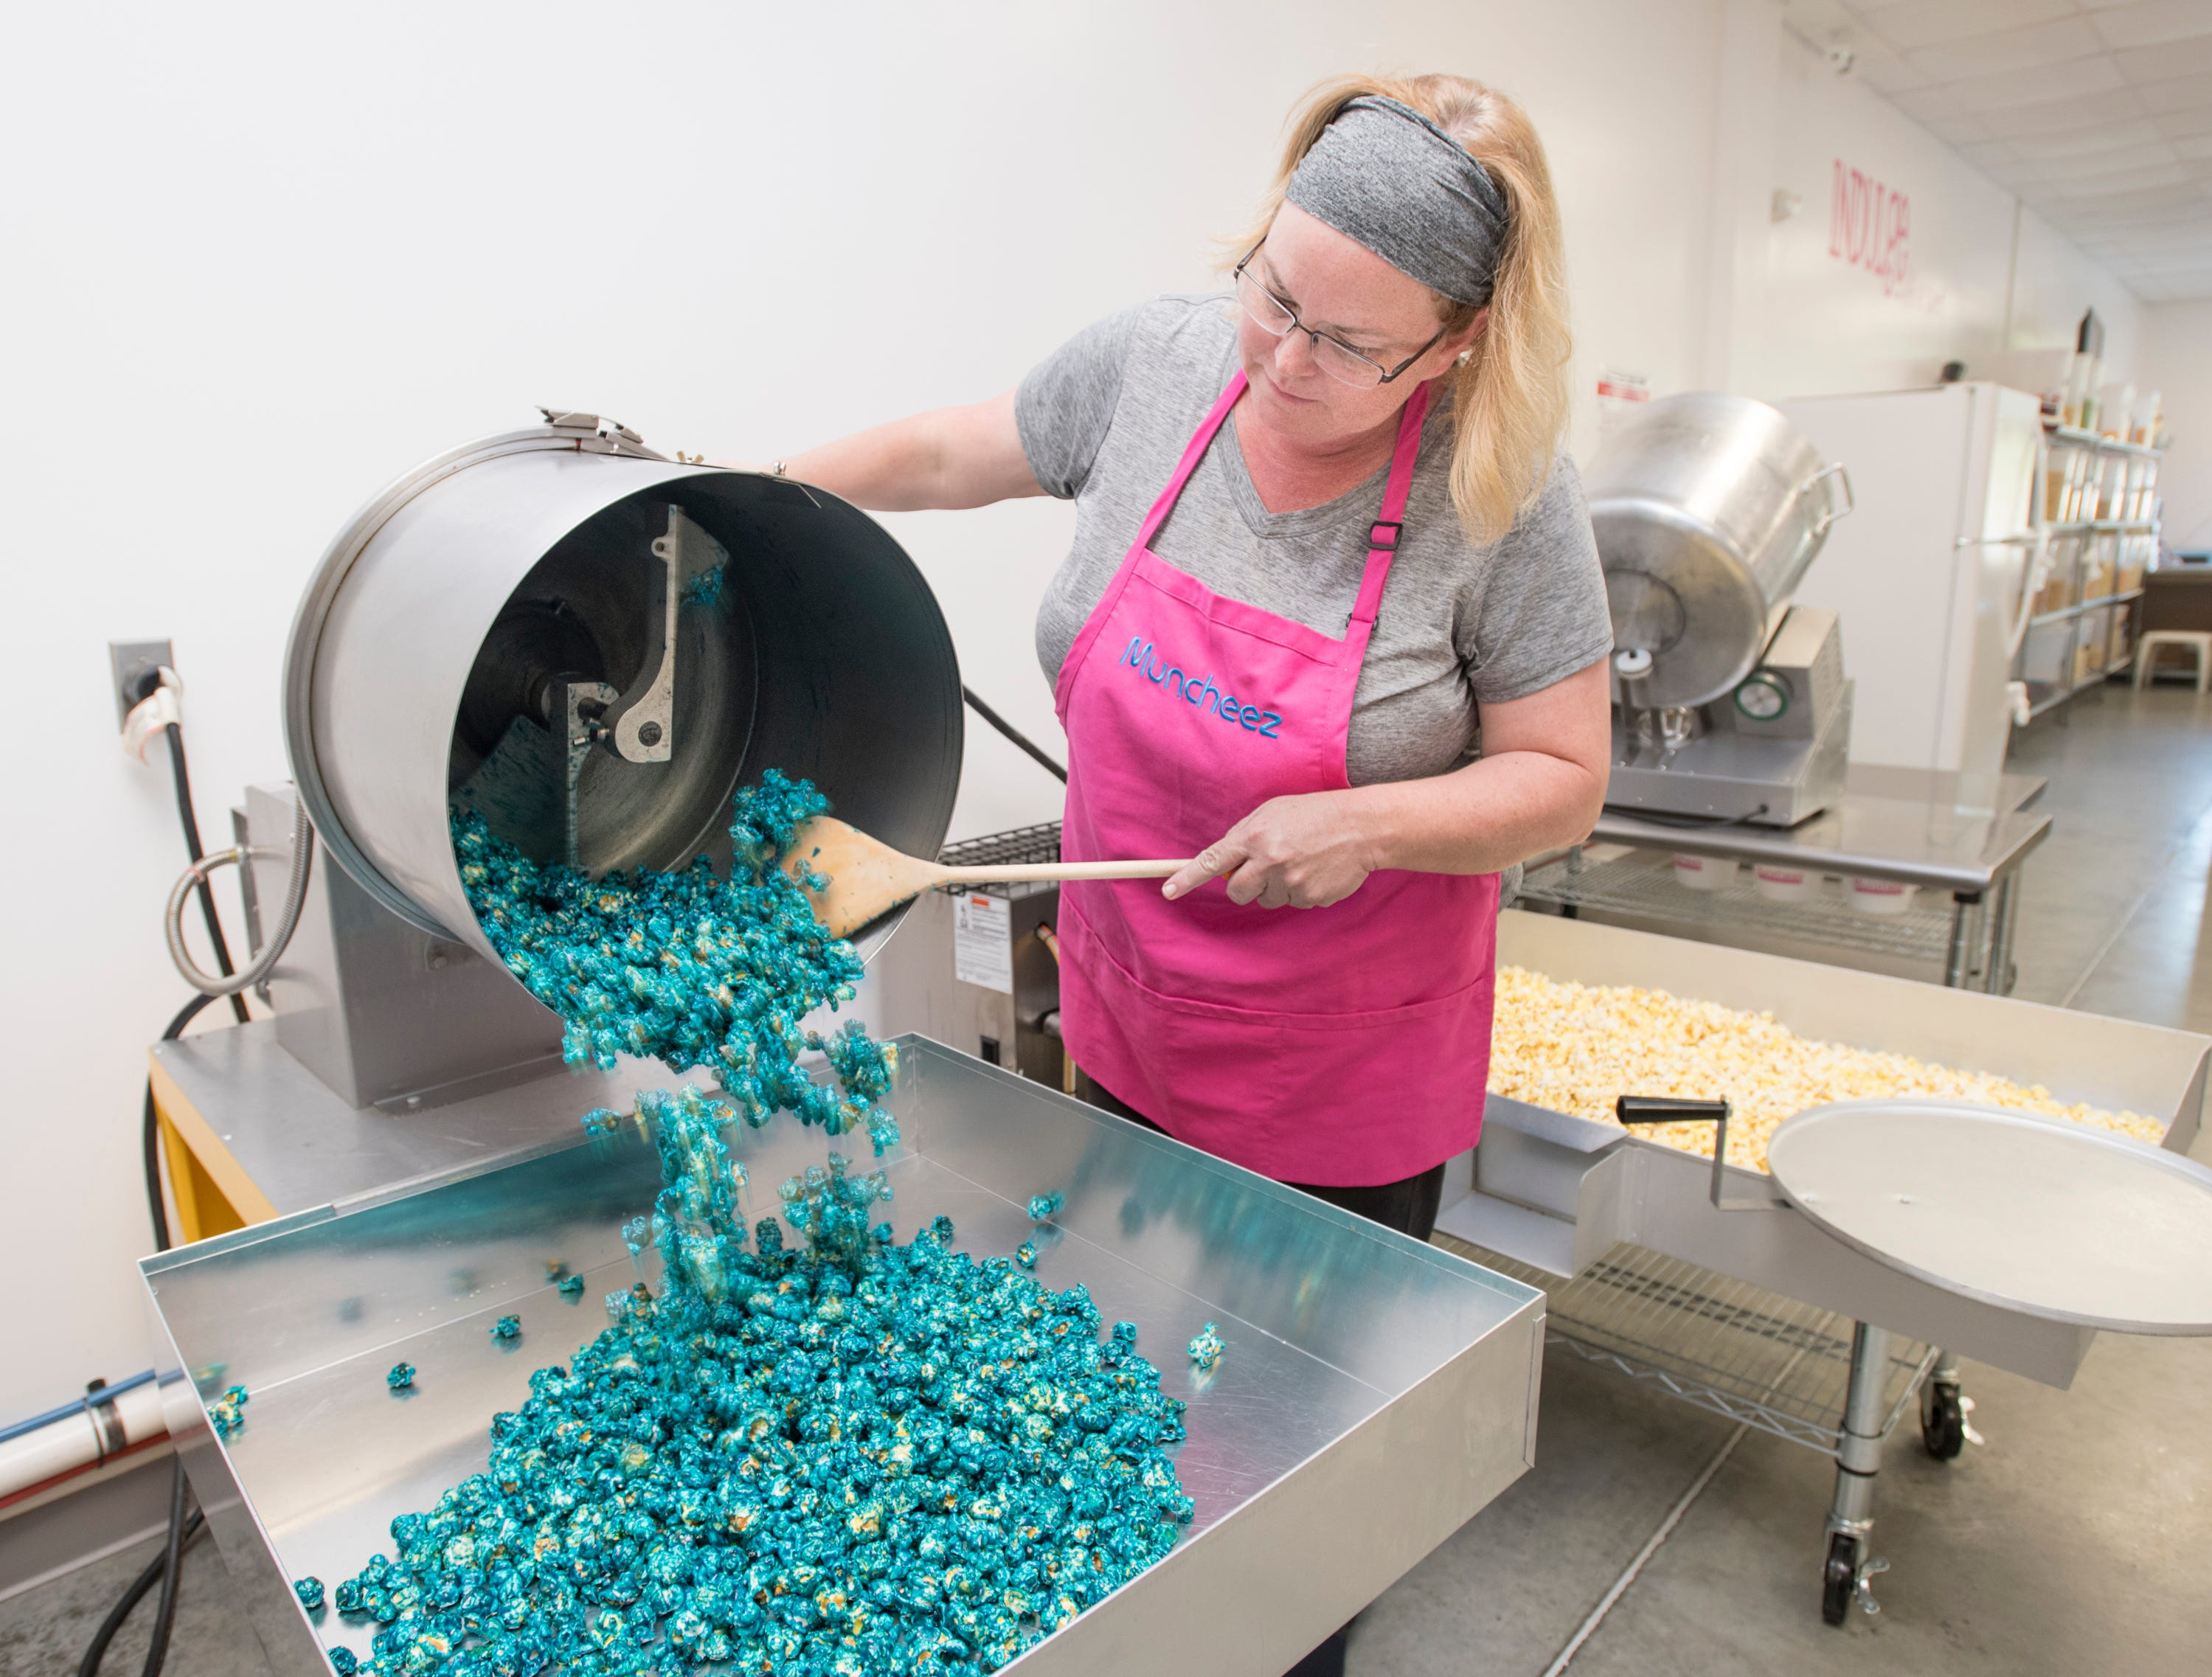 Muncheez gourmet popcorn, ice cream and sweet shop opens in Northwest Pensacola